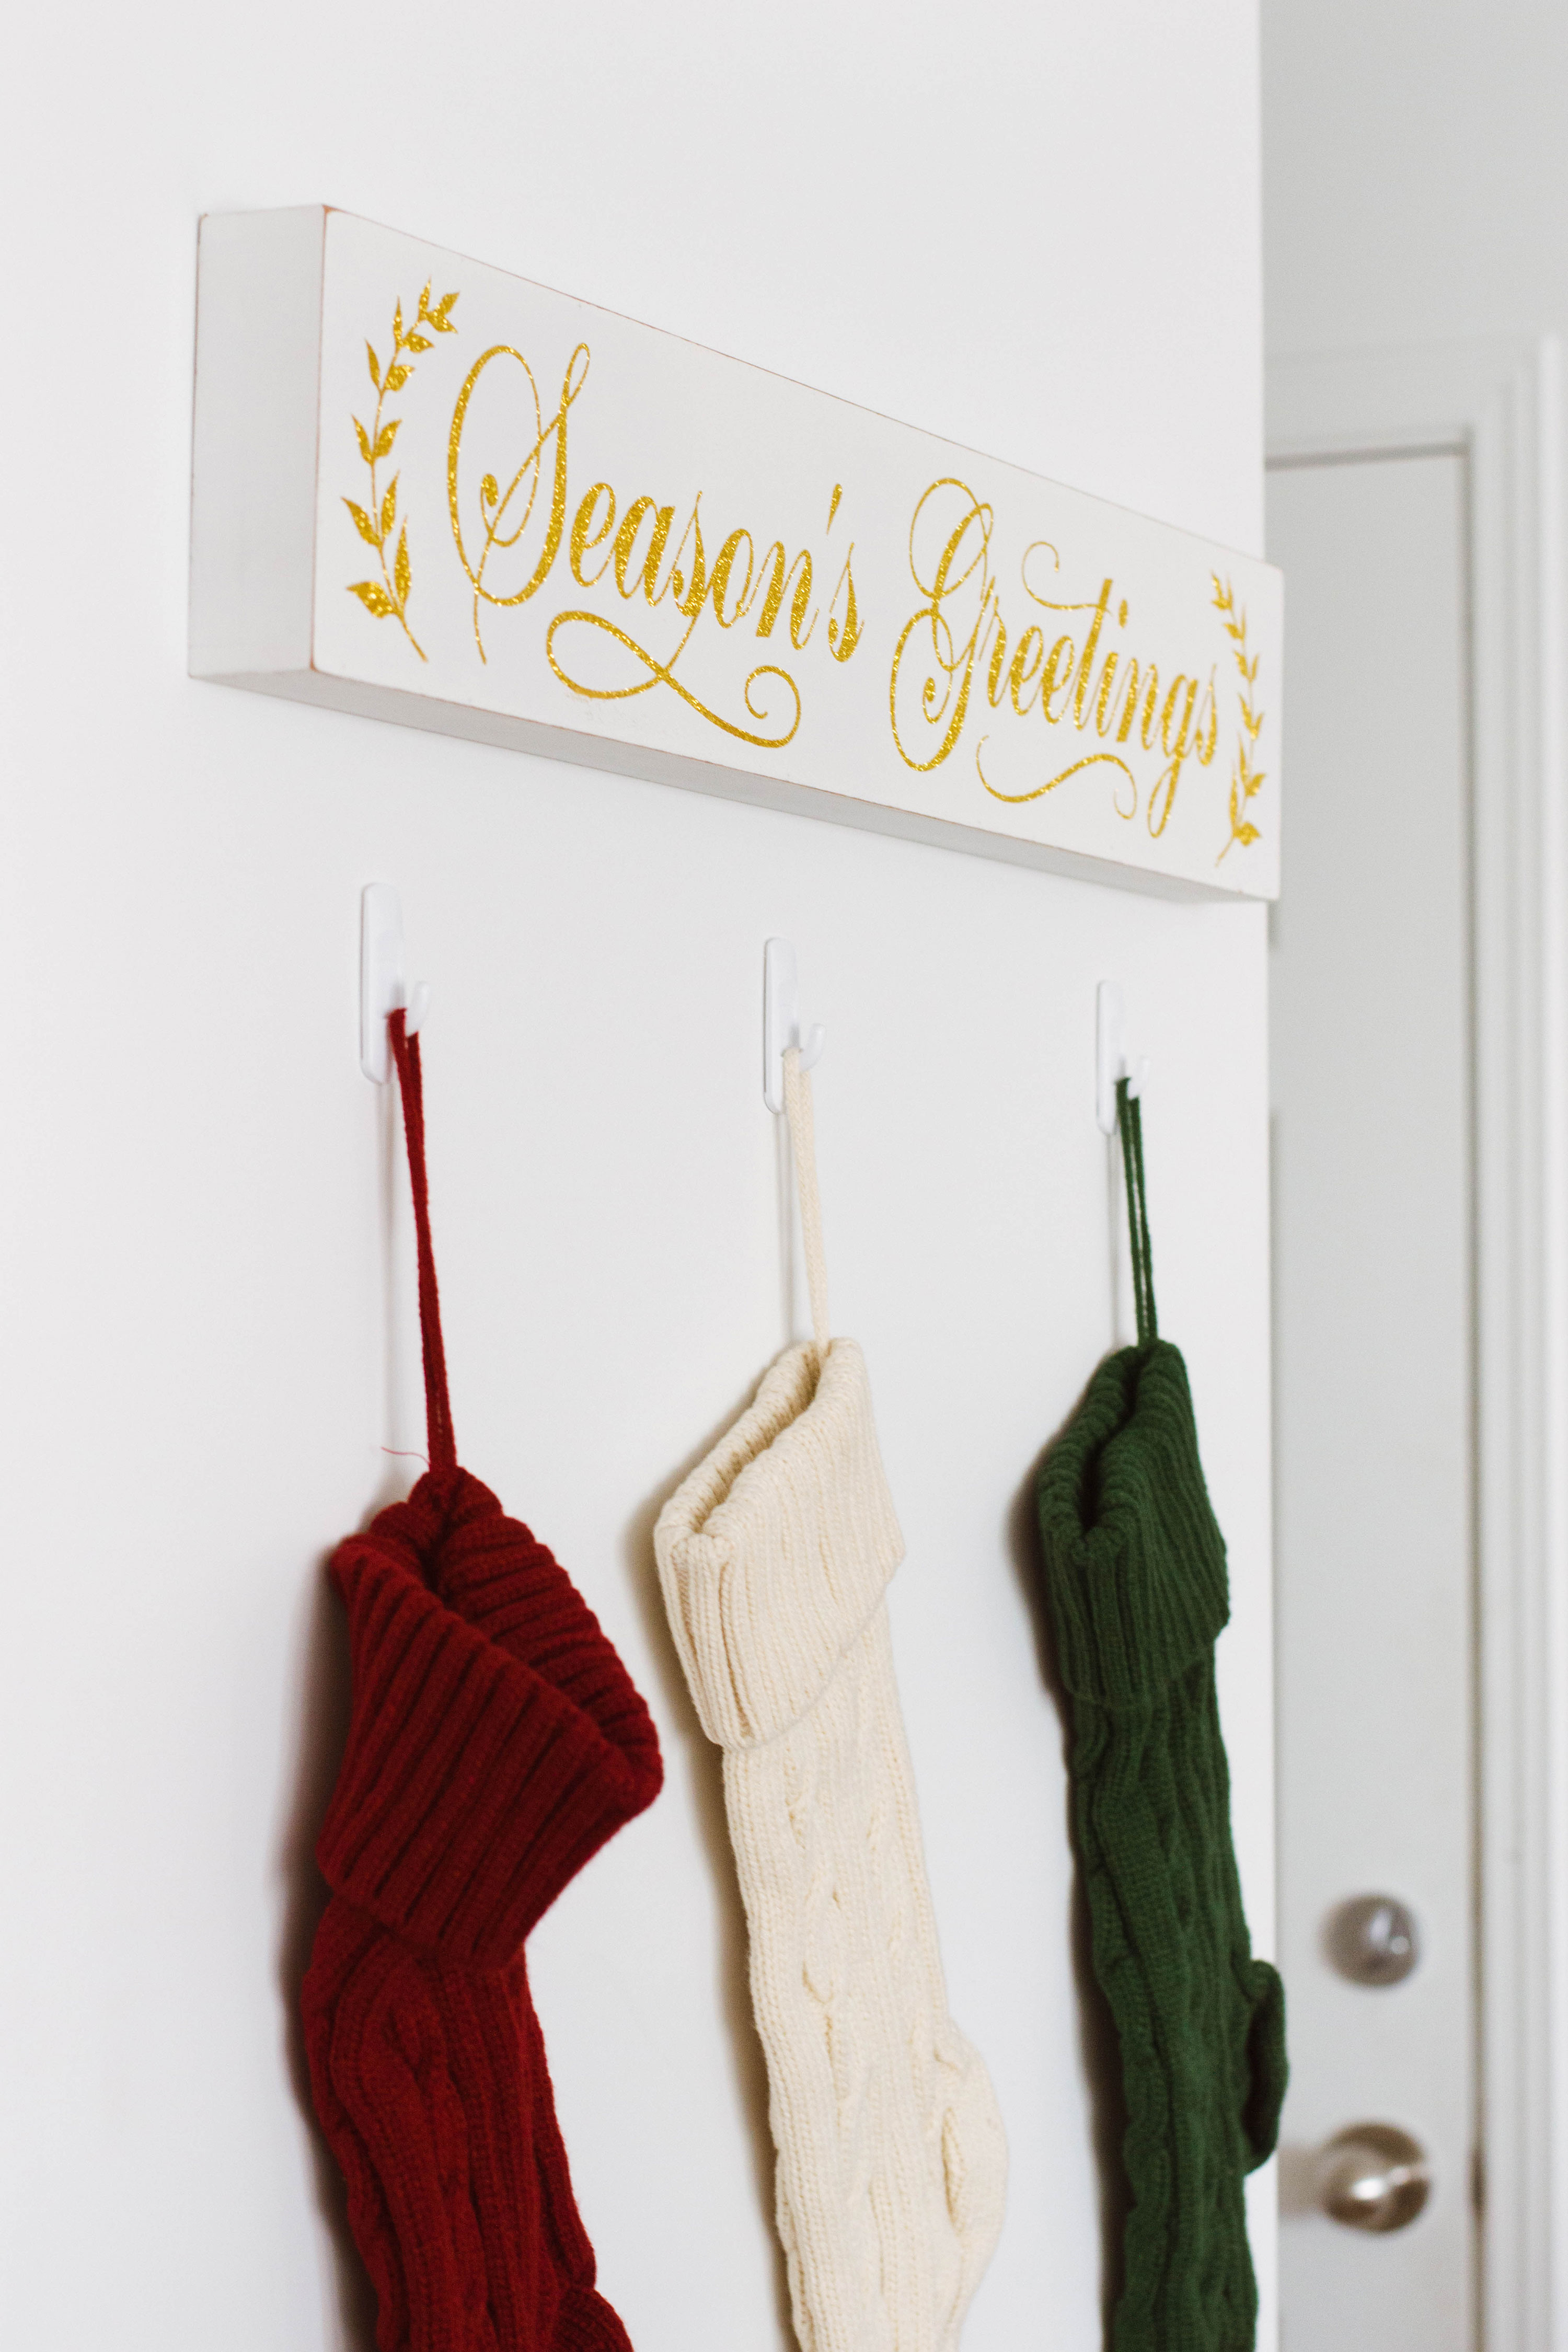 Holiday decor totally inspired by Harry Potter!